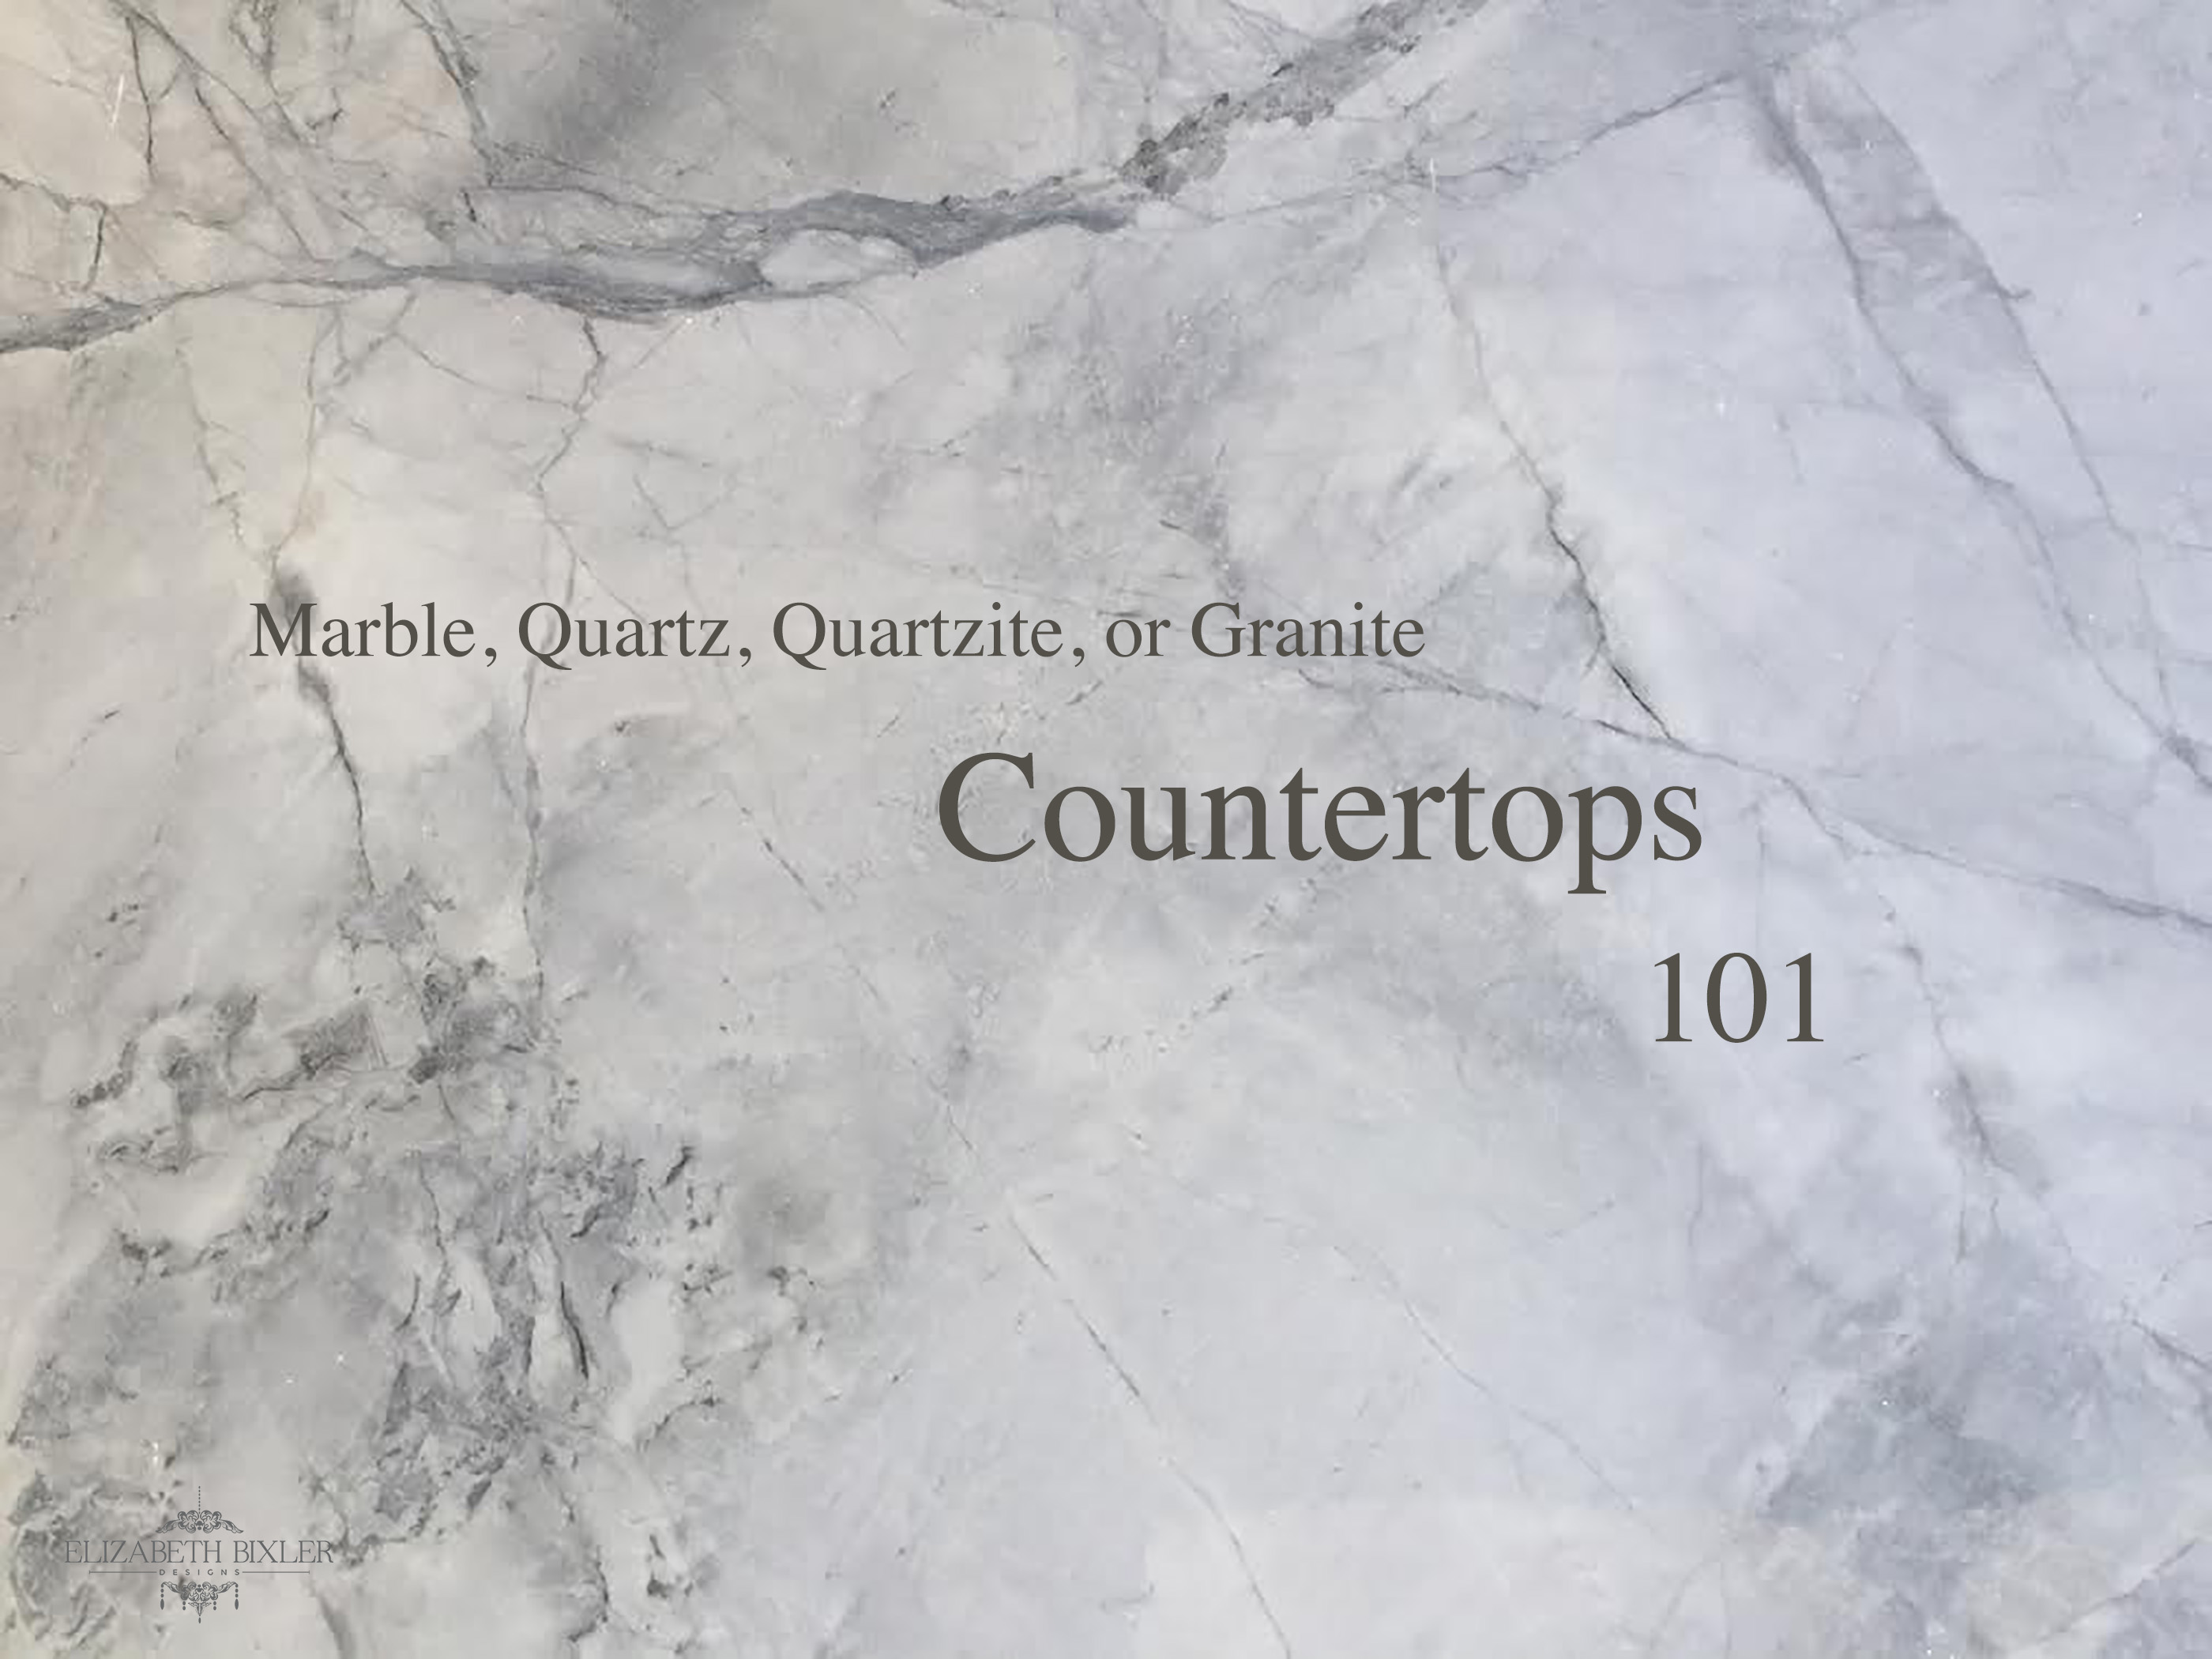 Pros And Cons Of Marble Countertops Marble Countertop Alternatives Pros 43 Cons